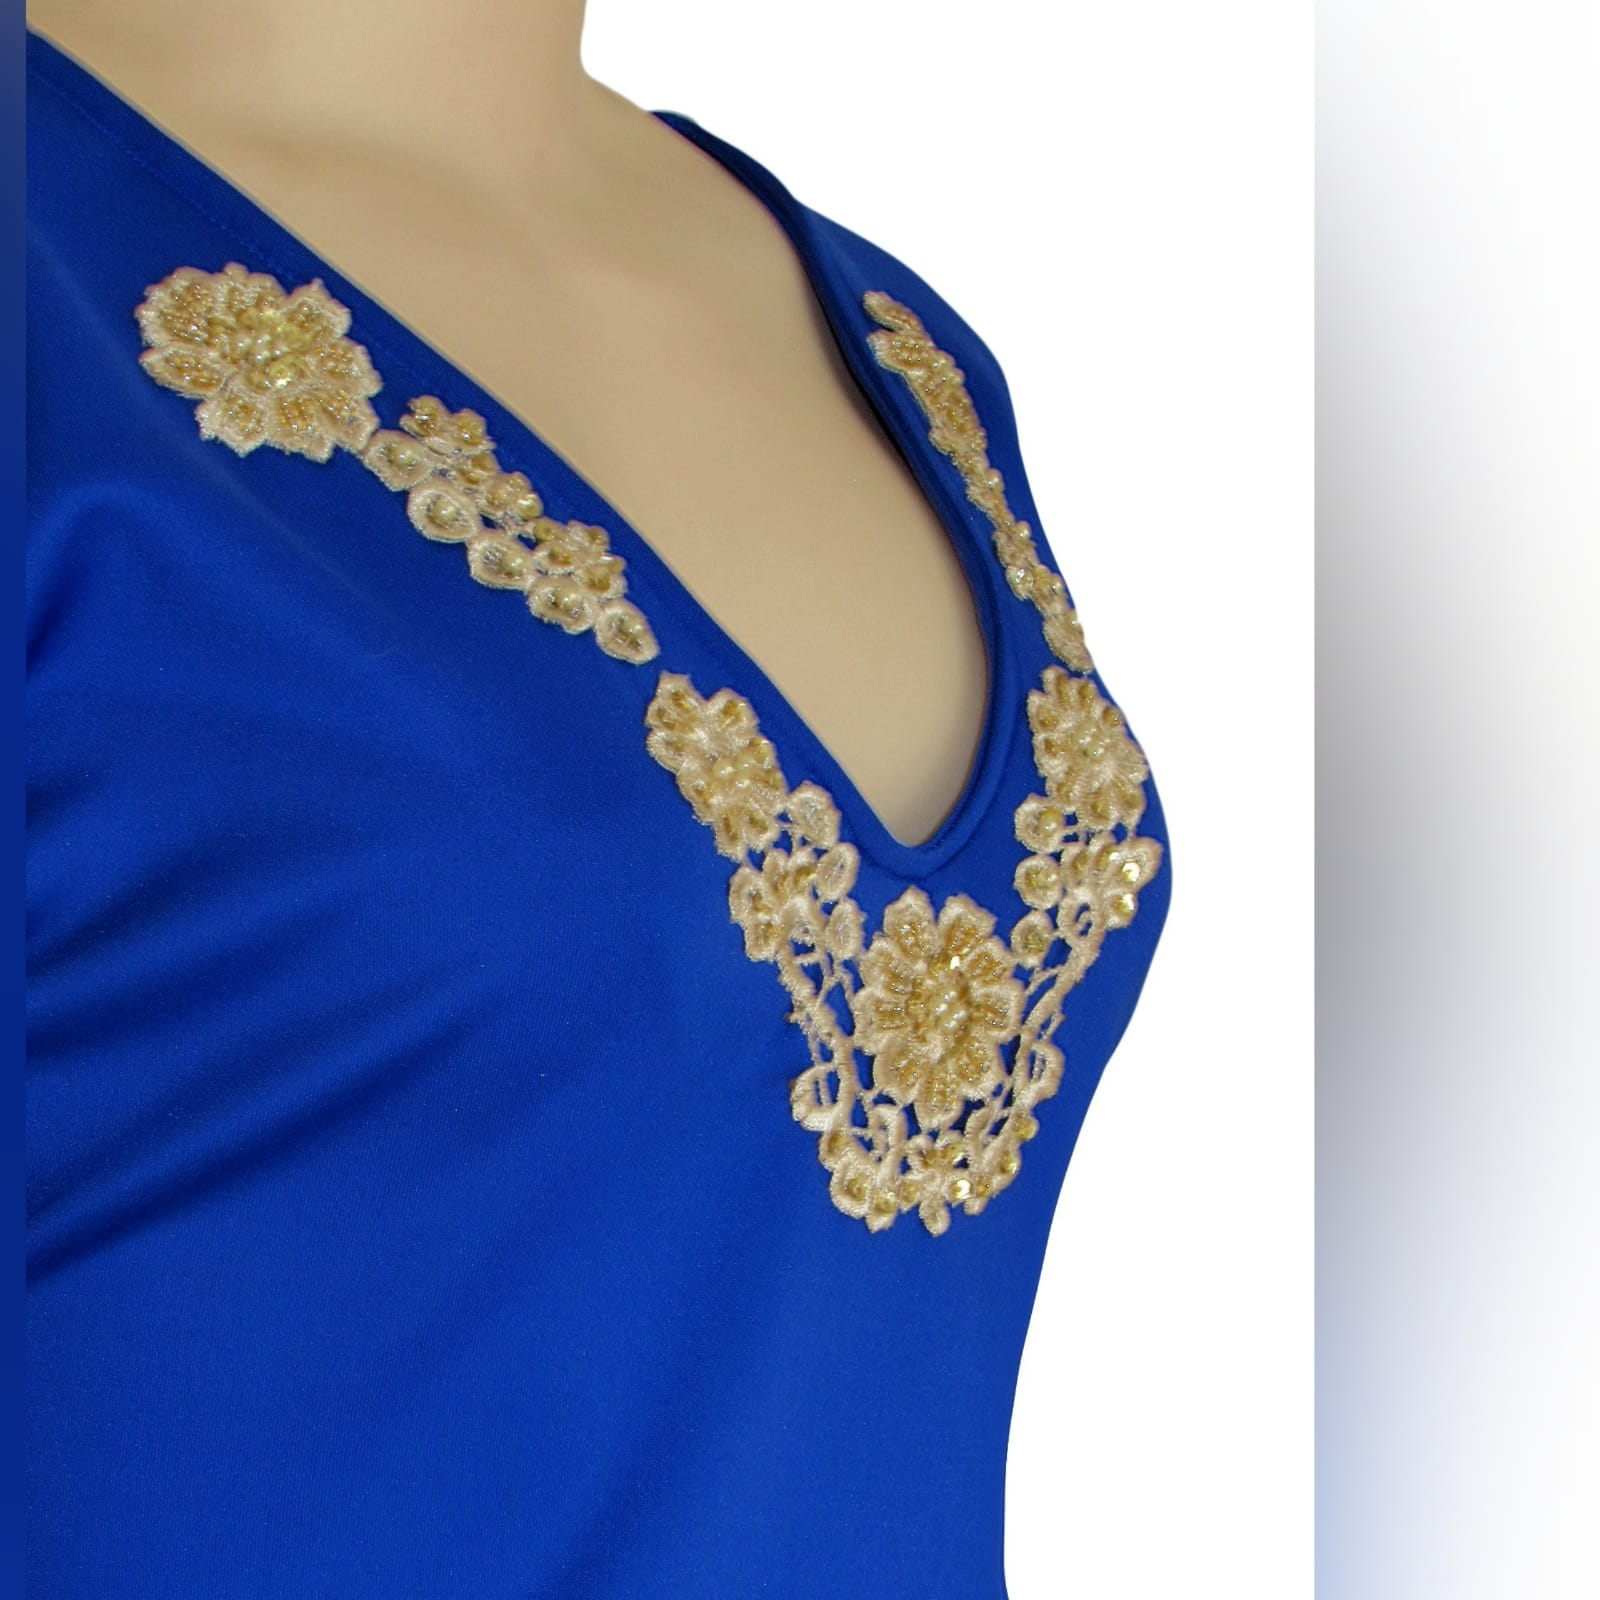 Royal blue & gold peplum smart casual top 3 royal blue & gold peplum smart casual top, long sleeves, v neckline & cuffs detailed with gold beaded lace